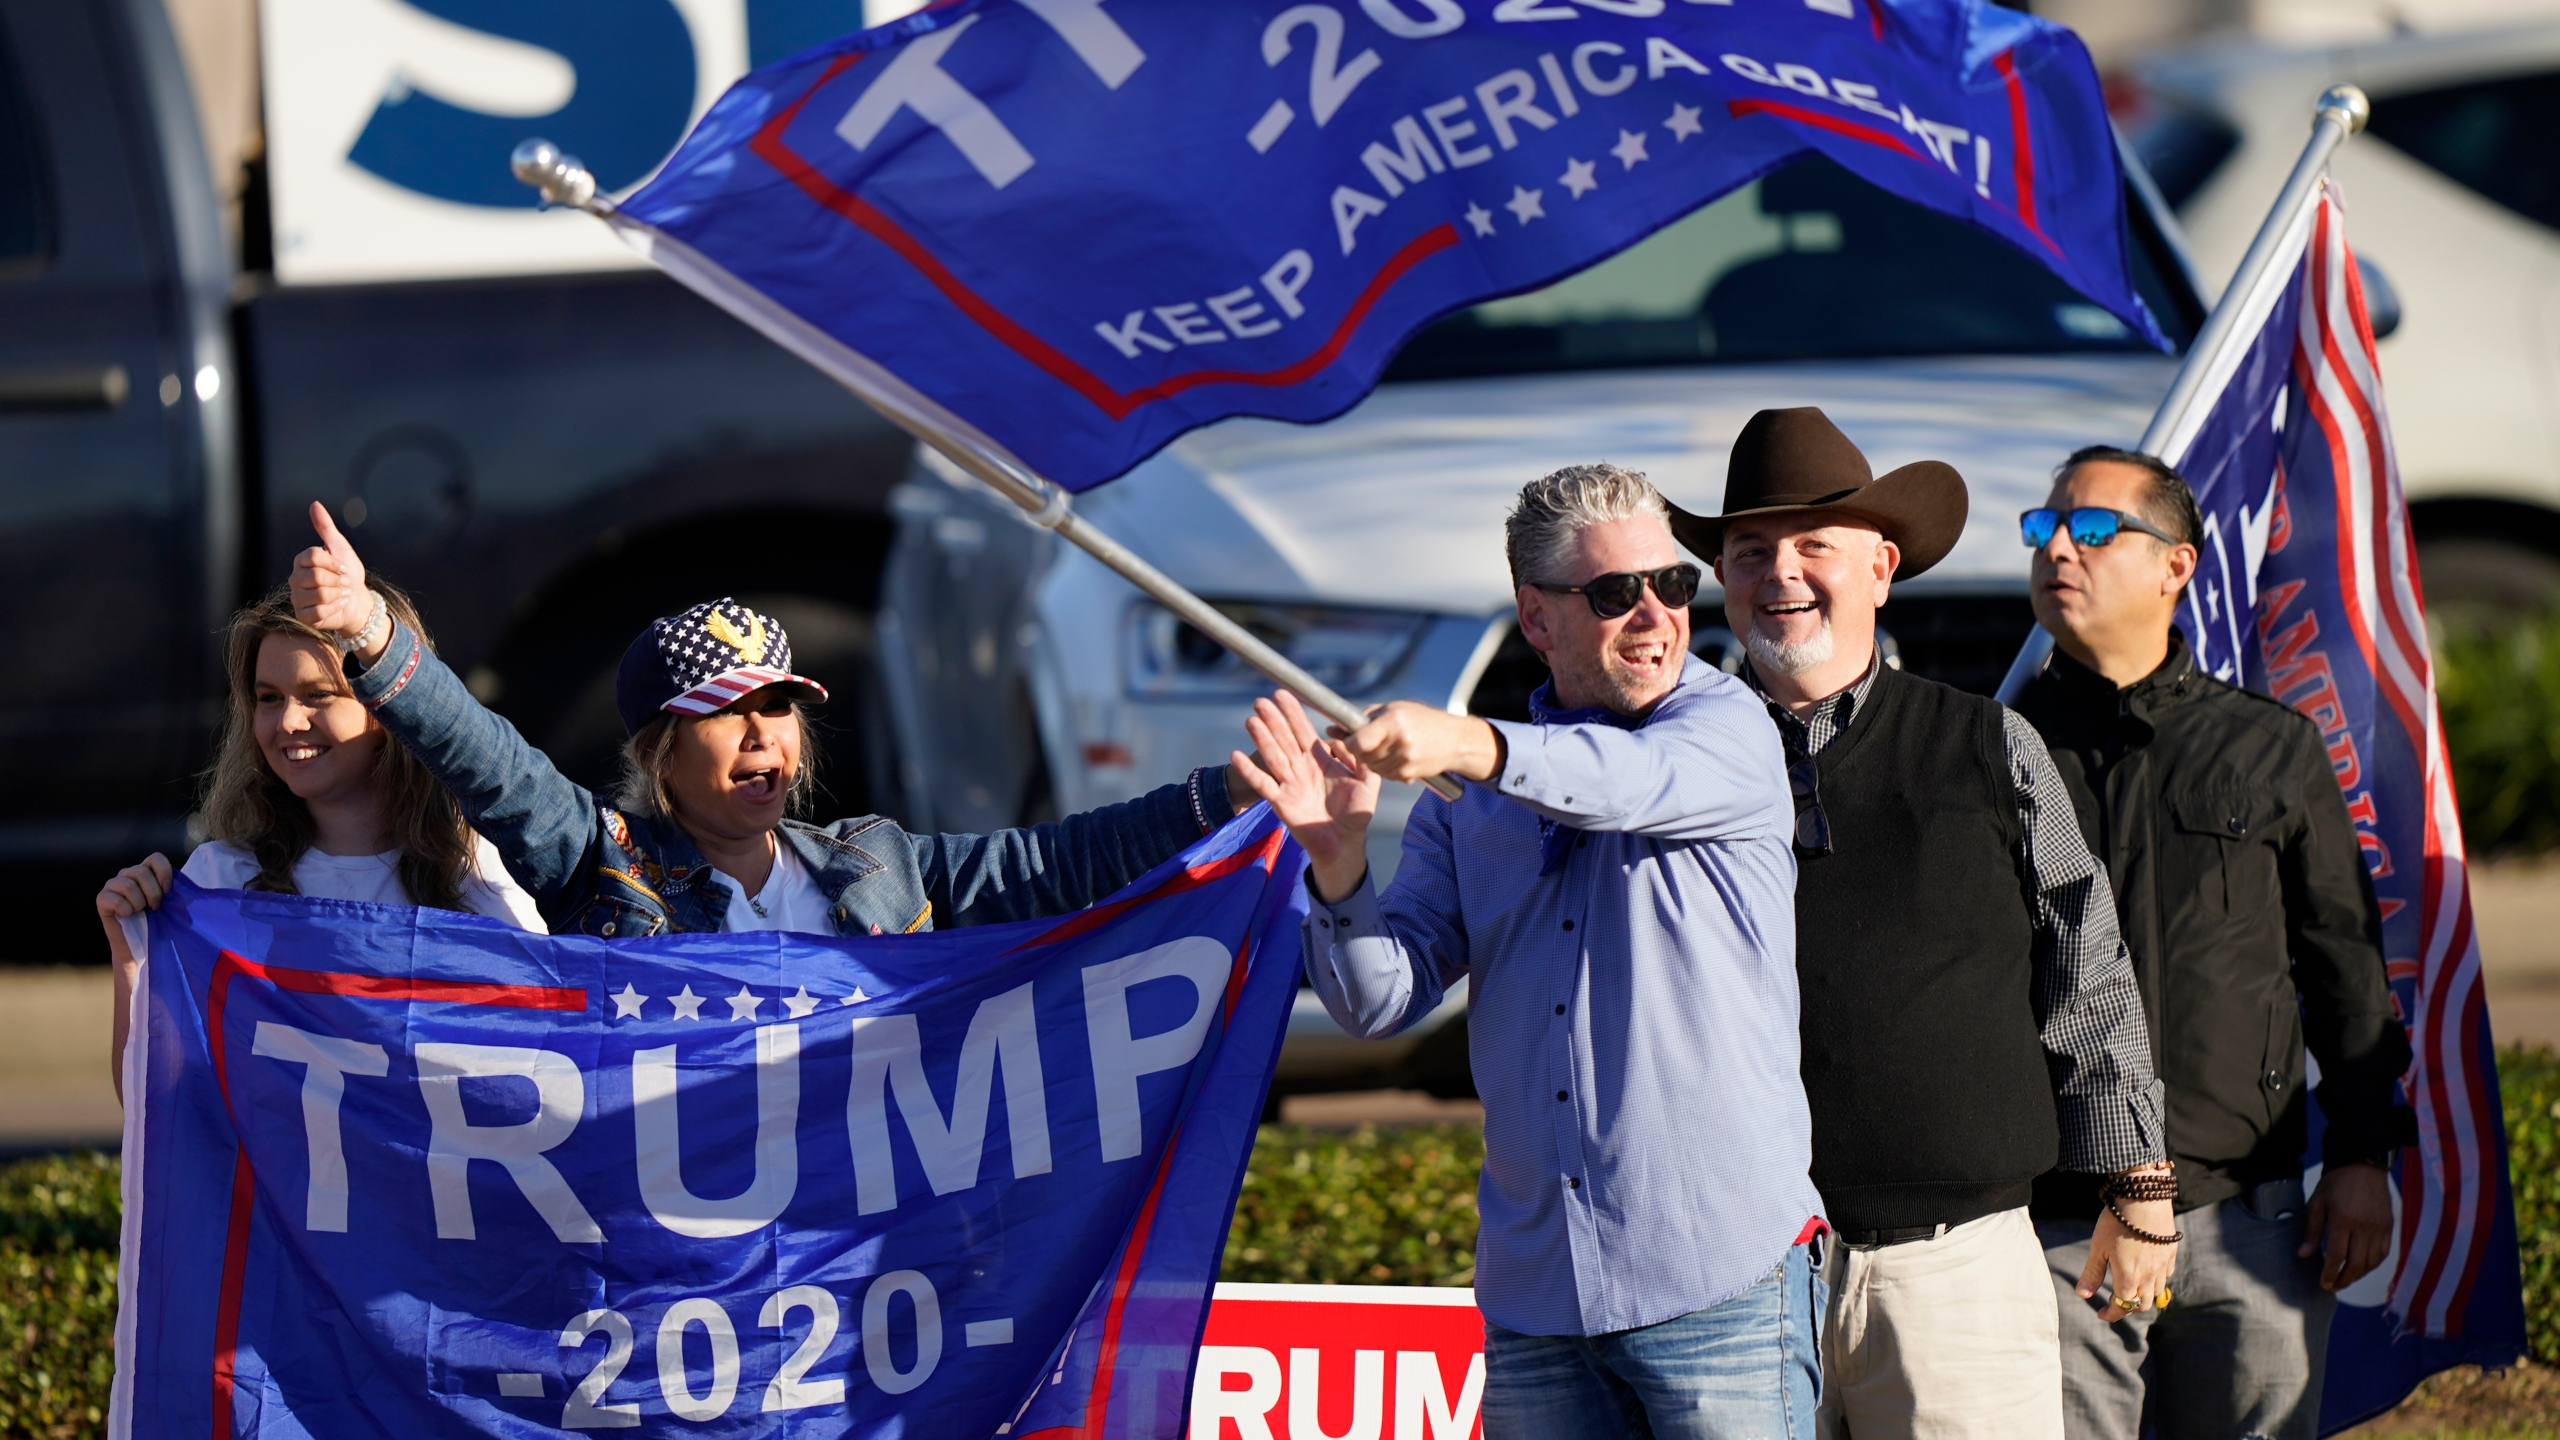 Supporters of President Trump cheer as passing cars honk their horns near a polling location in Houston on Election Day, Nov. 3, 2020. (David J. Phillip / Associated Press)